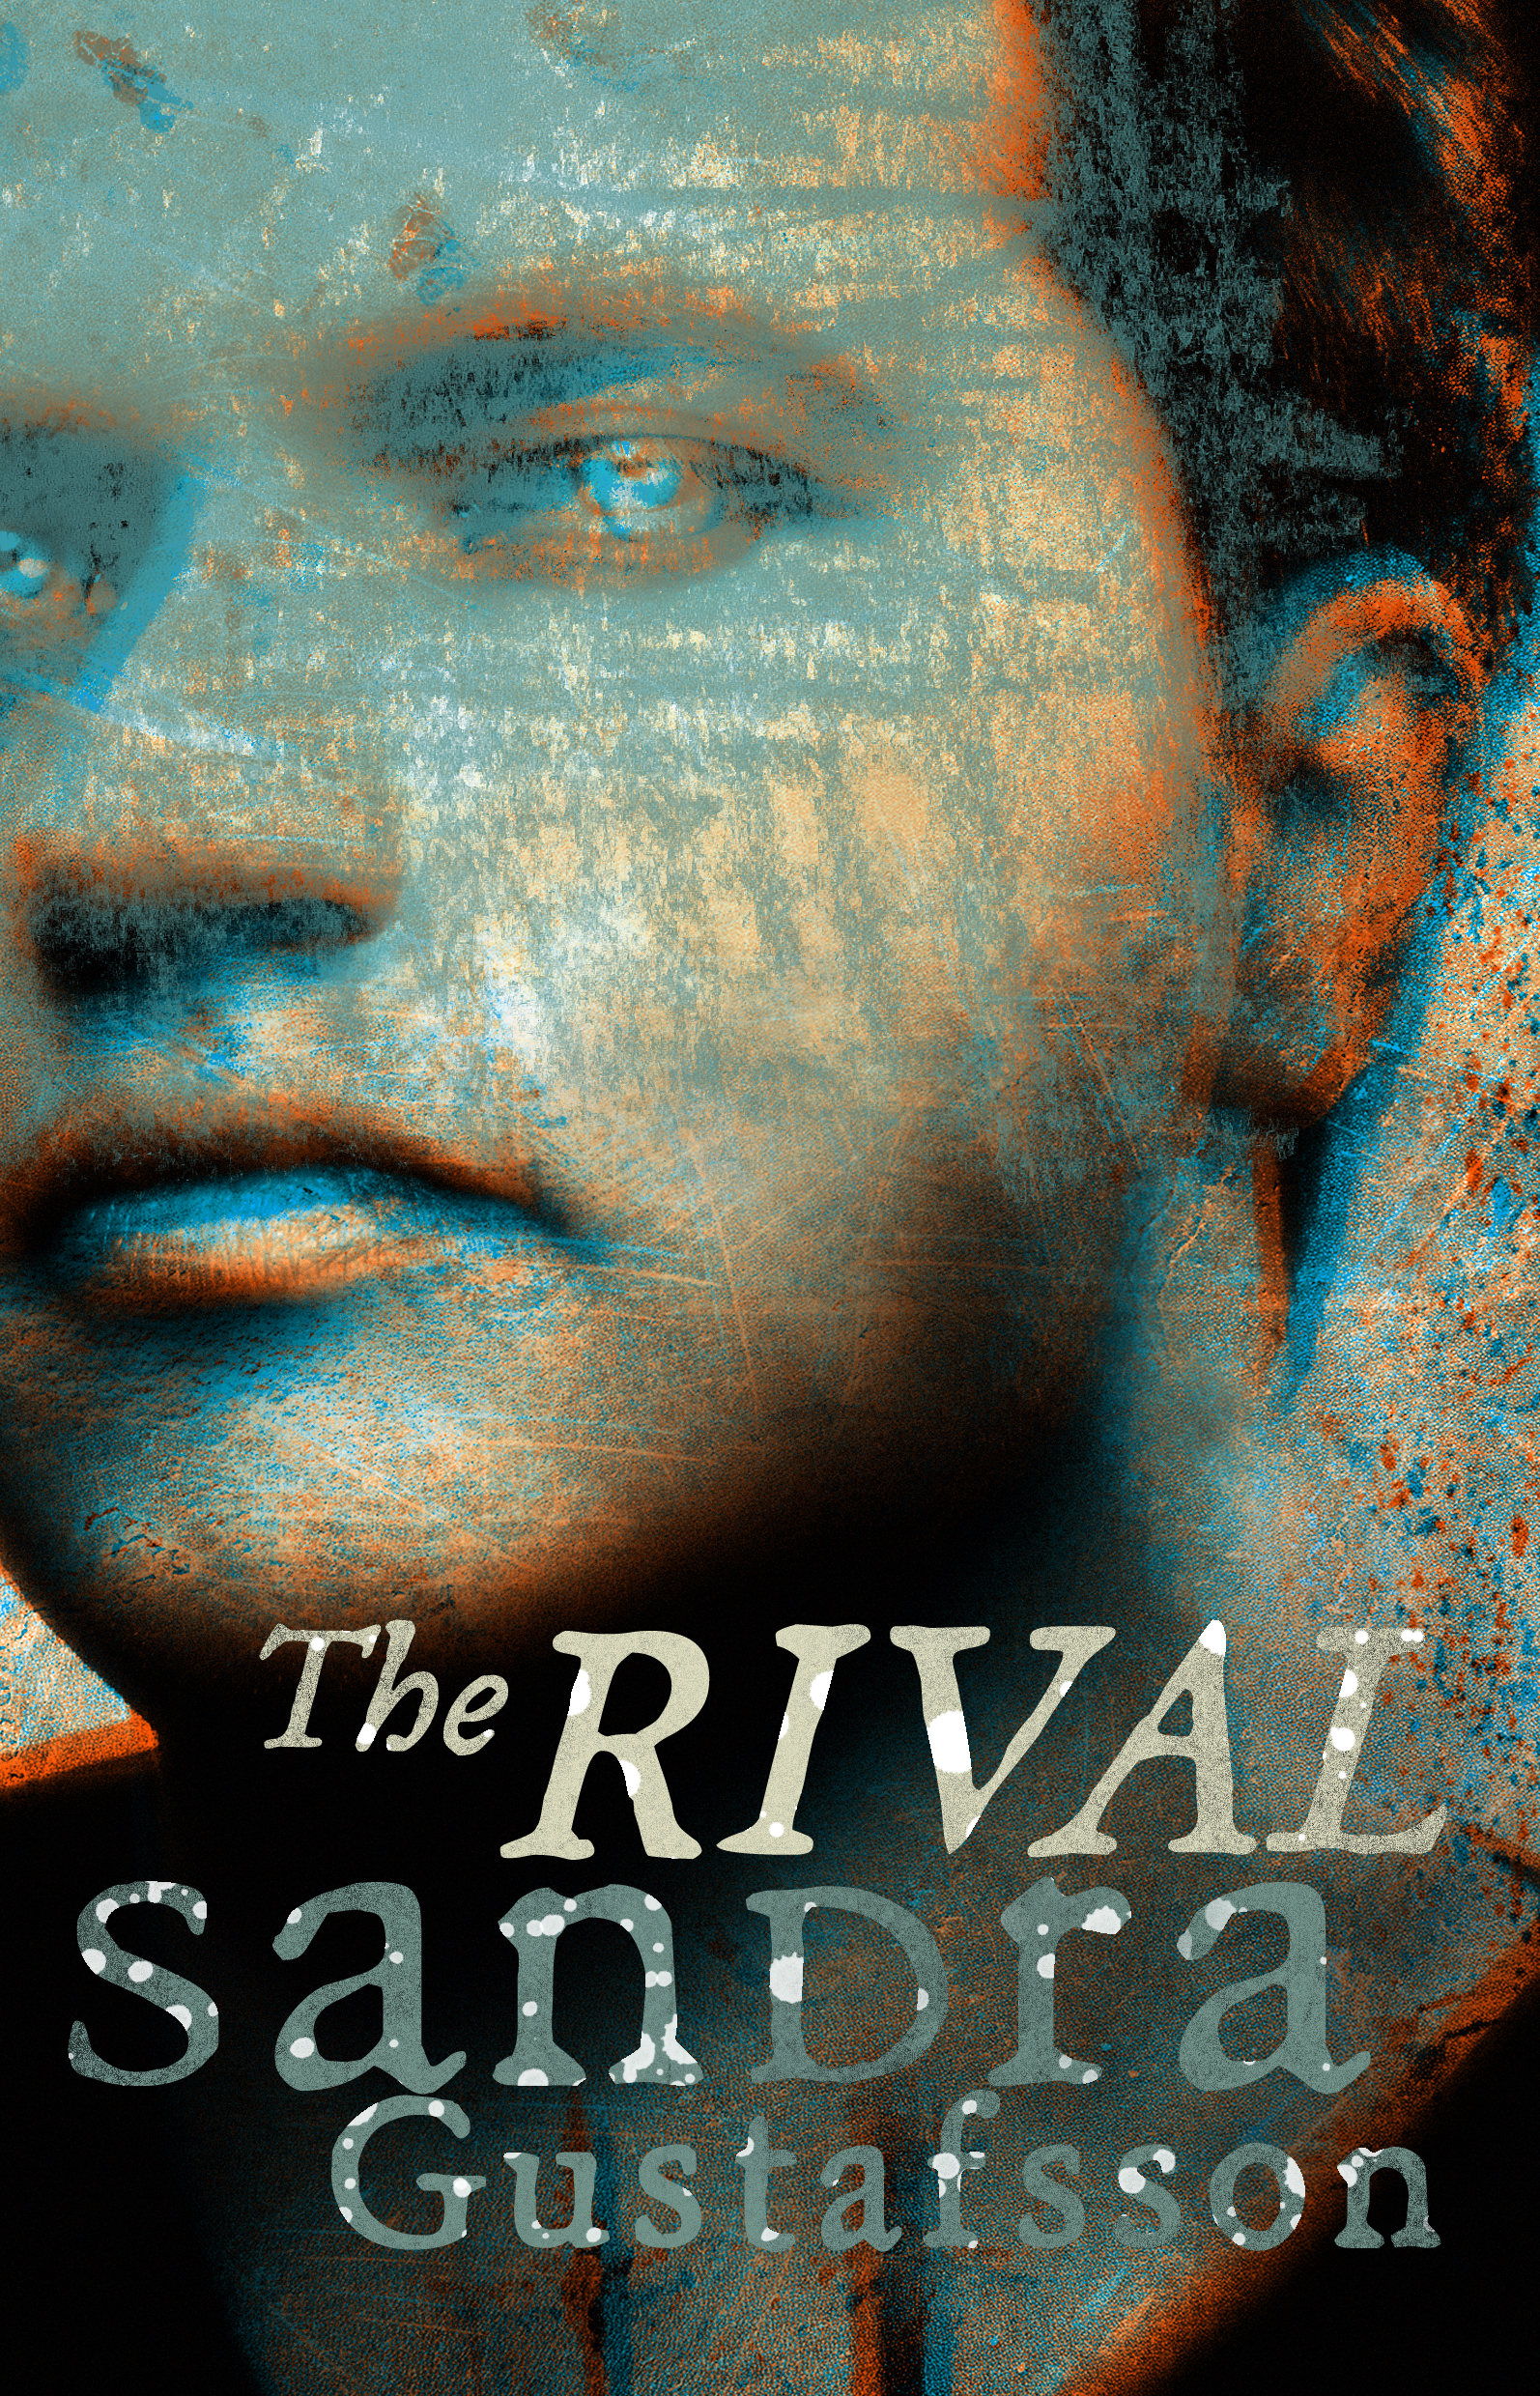 The Rival, Kindle edition/paperback